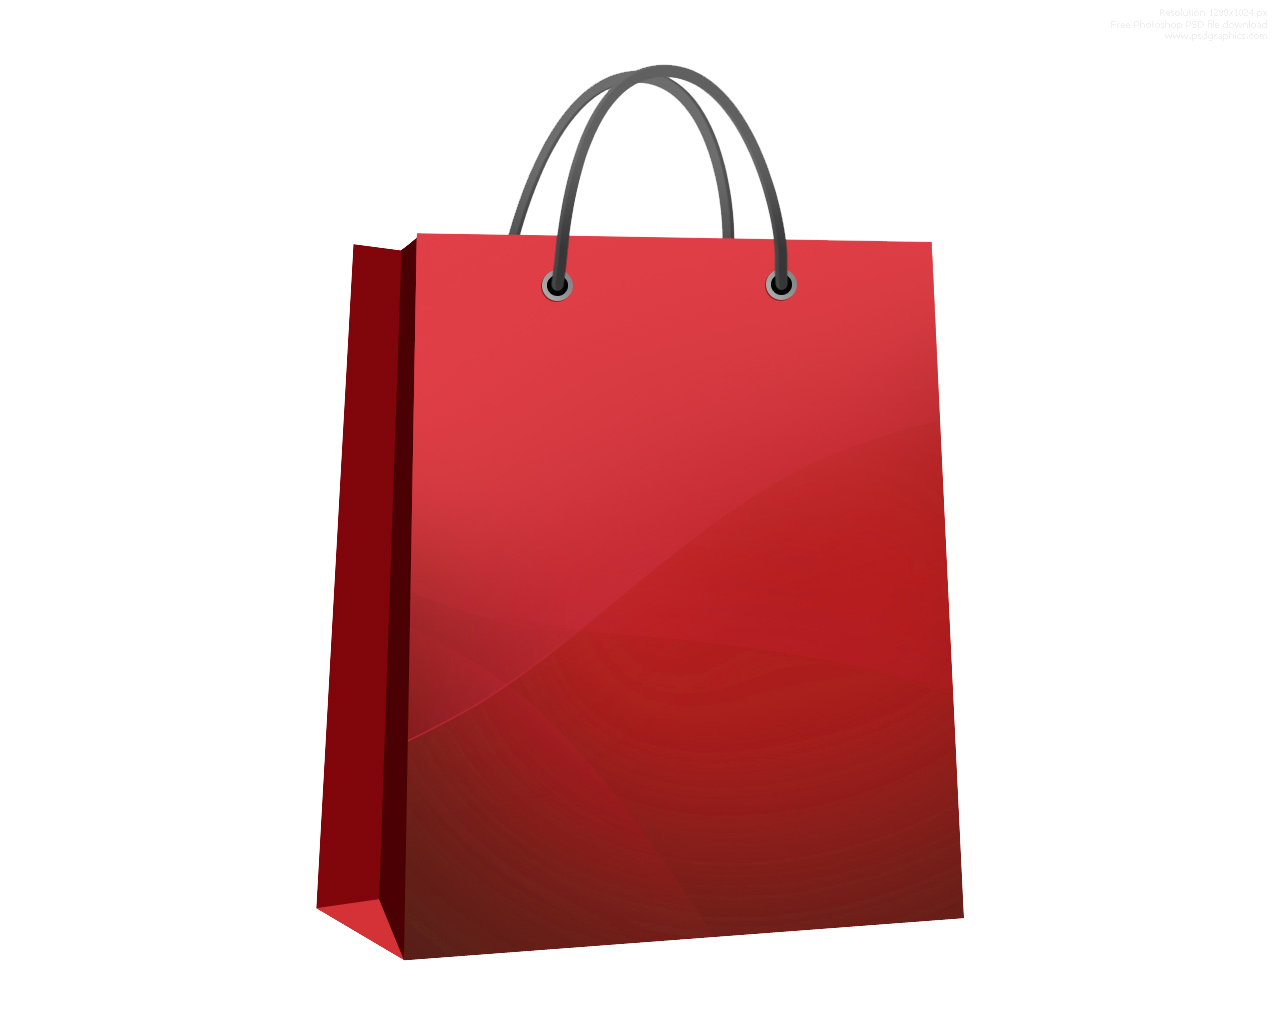 Shopping Bag Png Hd PNG Image